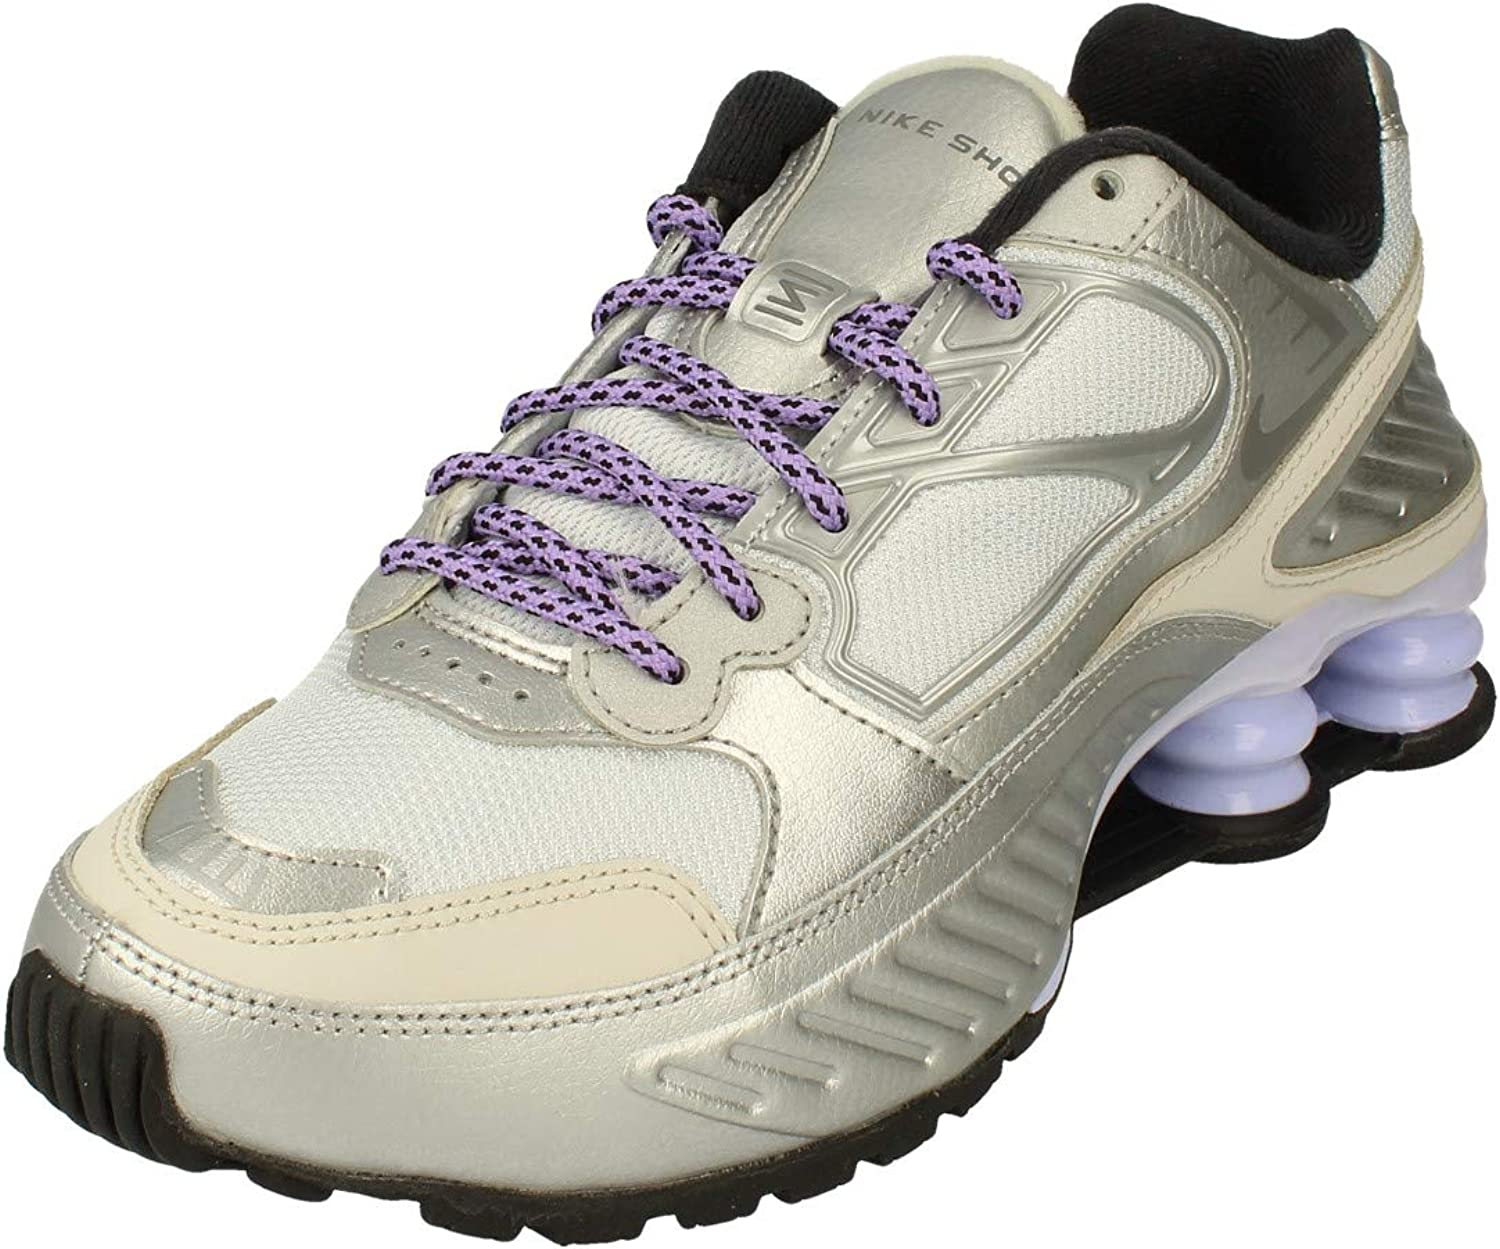 Nike Womens Shox Enigma Running Sneakers At3450 New Shipping Free Shipping Trainers Shoes Gorgeous